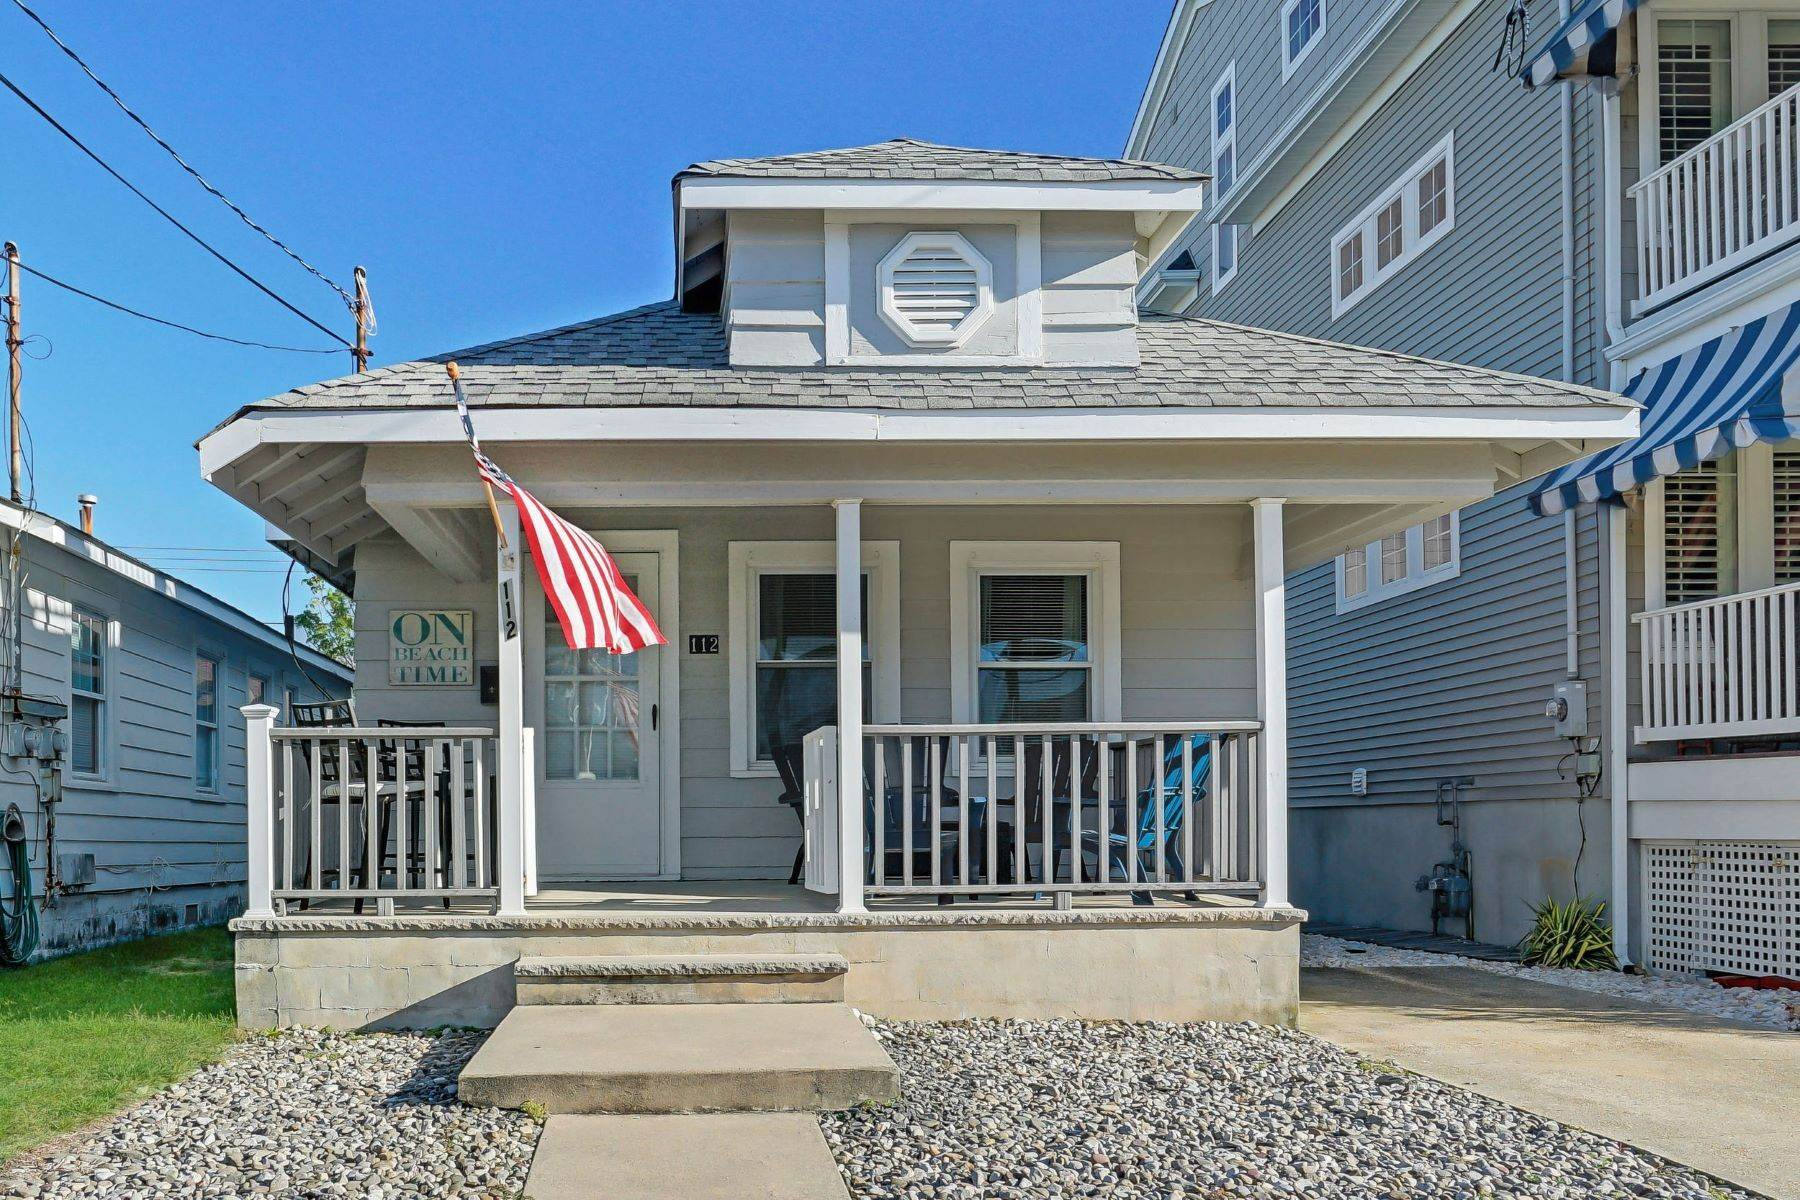 Property for Sale at Classic Seashore Bungalow 112 14th Avenue Belmar, New Jersey 07719 United States